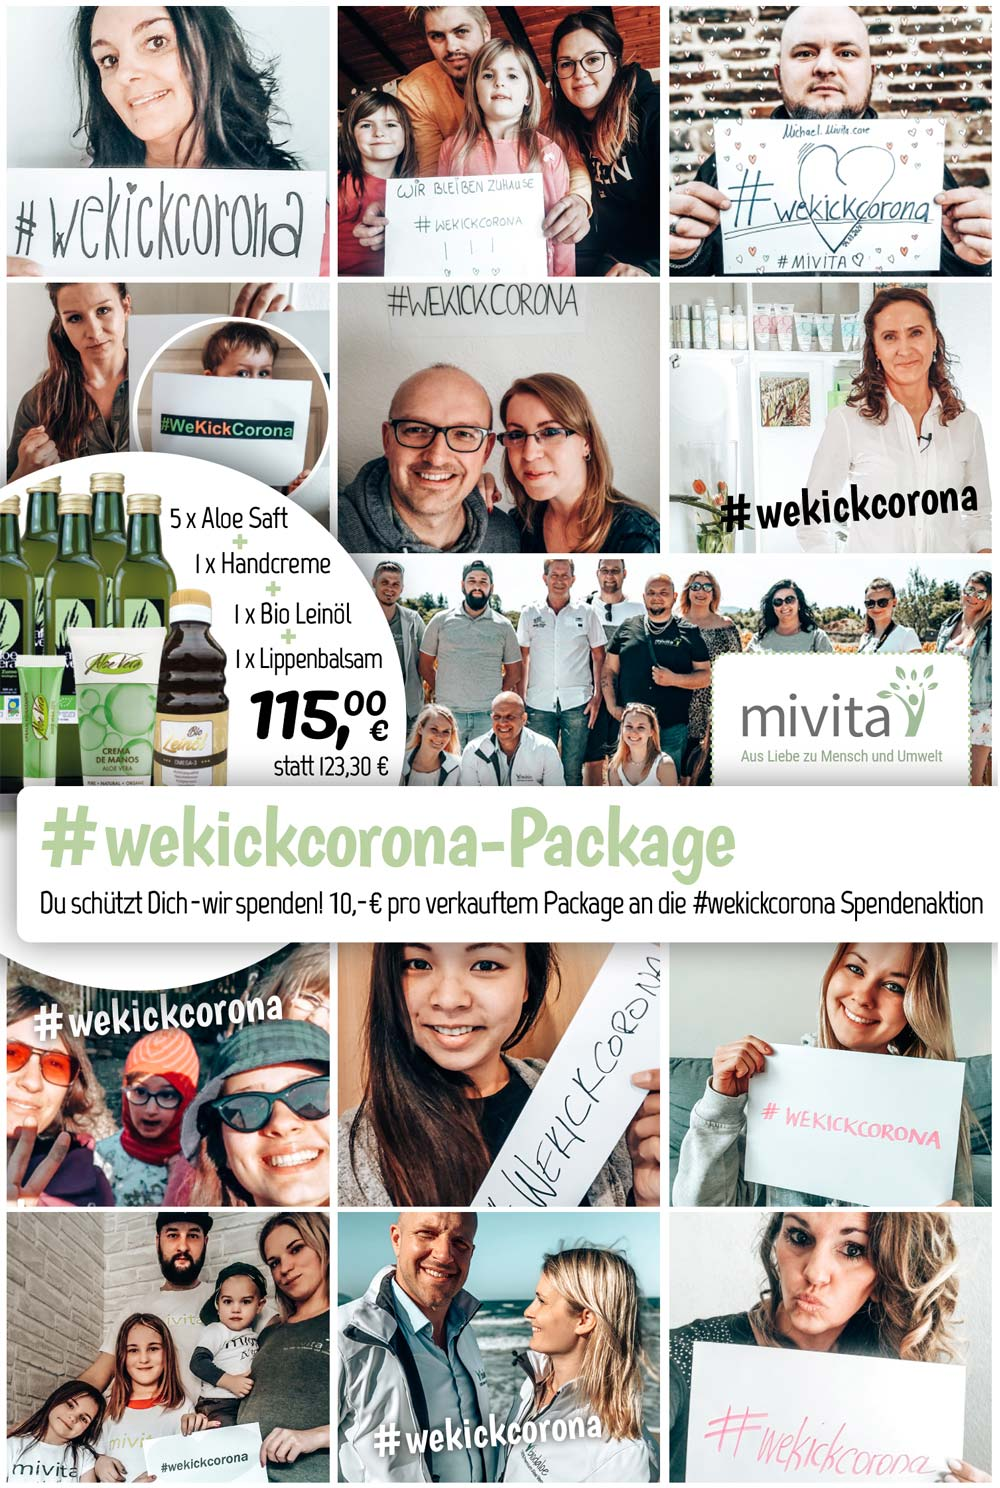 #wekickcorona Package Team Mivita